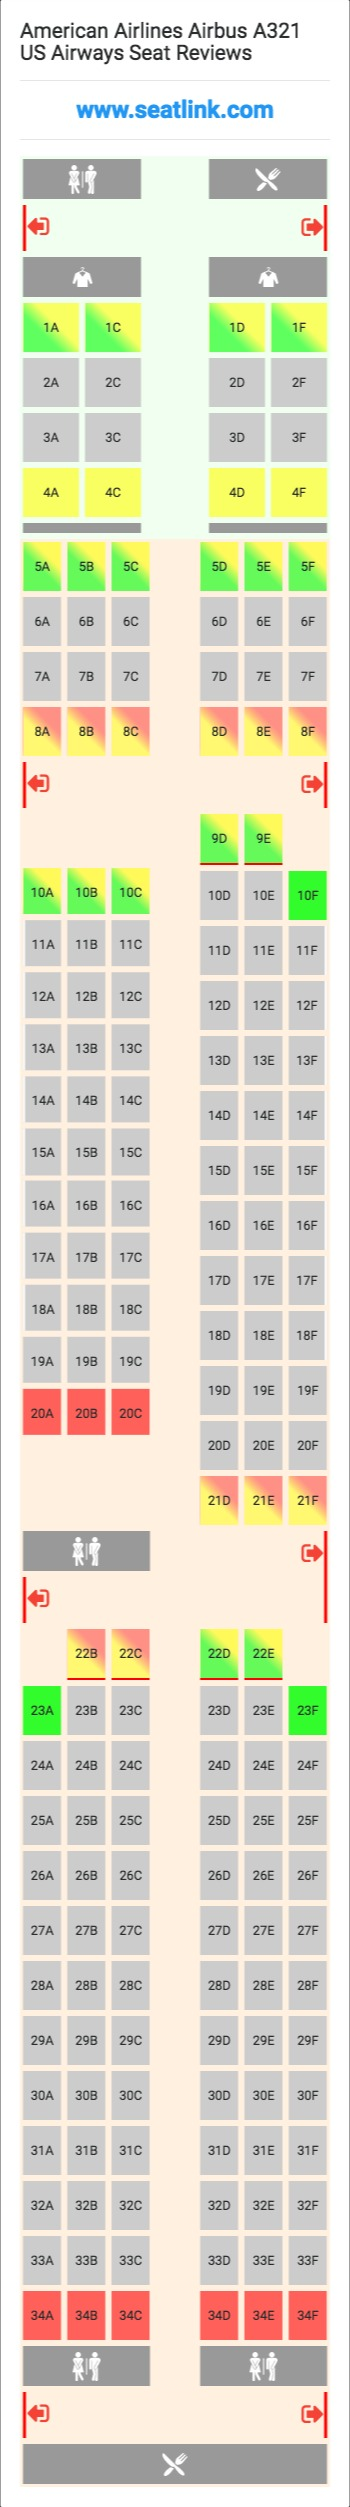 American Airlines Airbus A321 US Airways Seating Chart - Updated ...